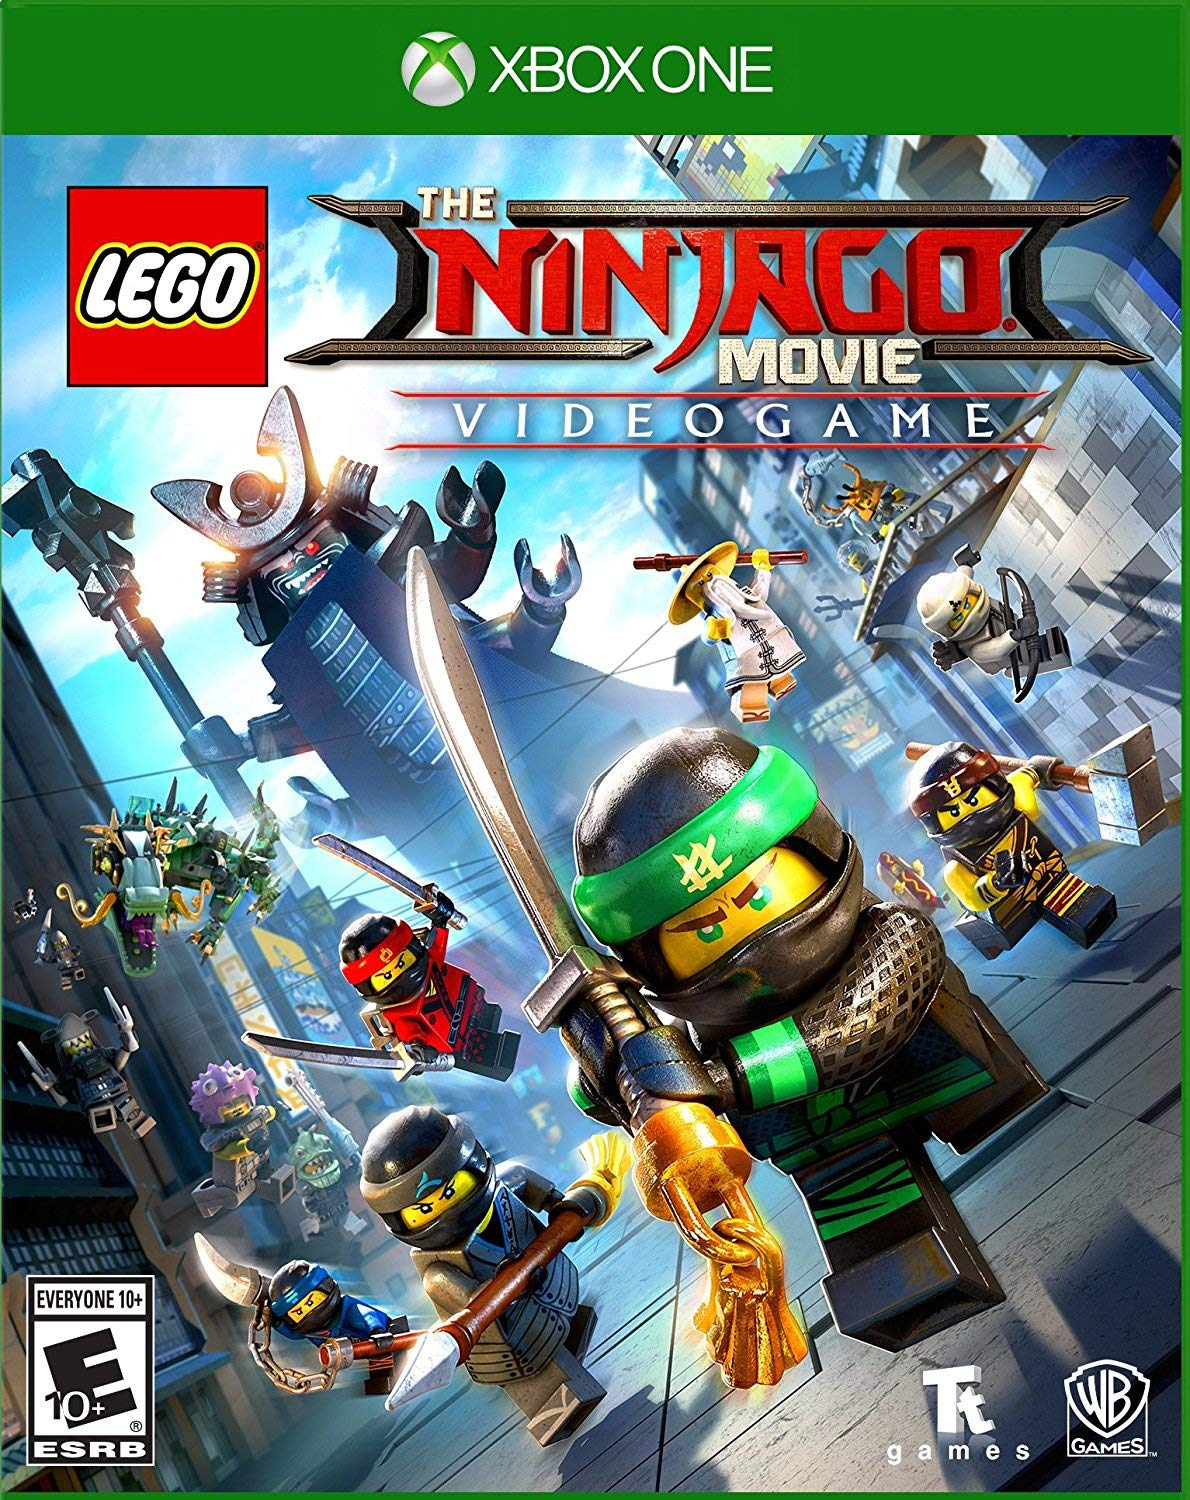 Amazon.com: The Lego Ninjago Movie Videogame - Nintendo ...